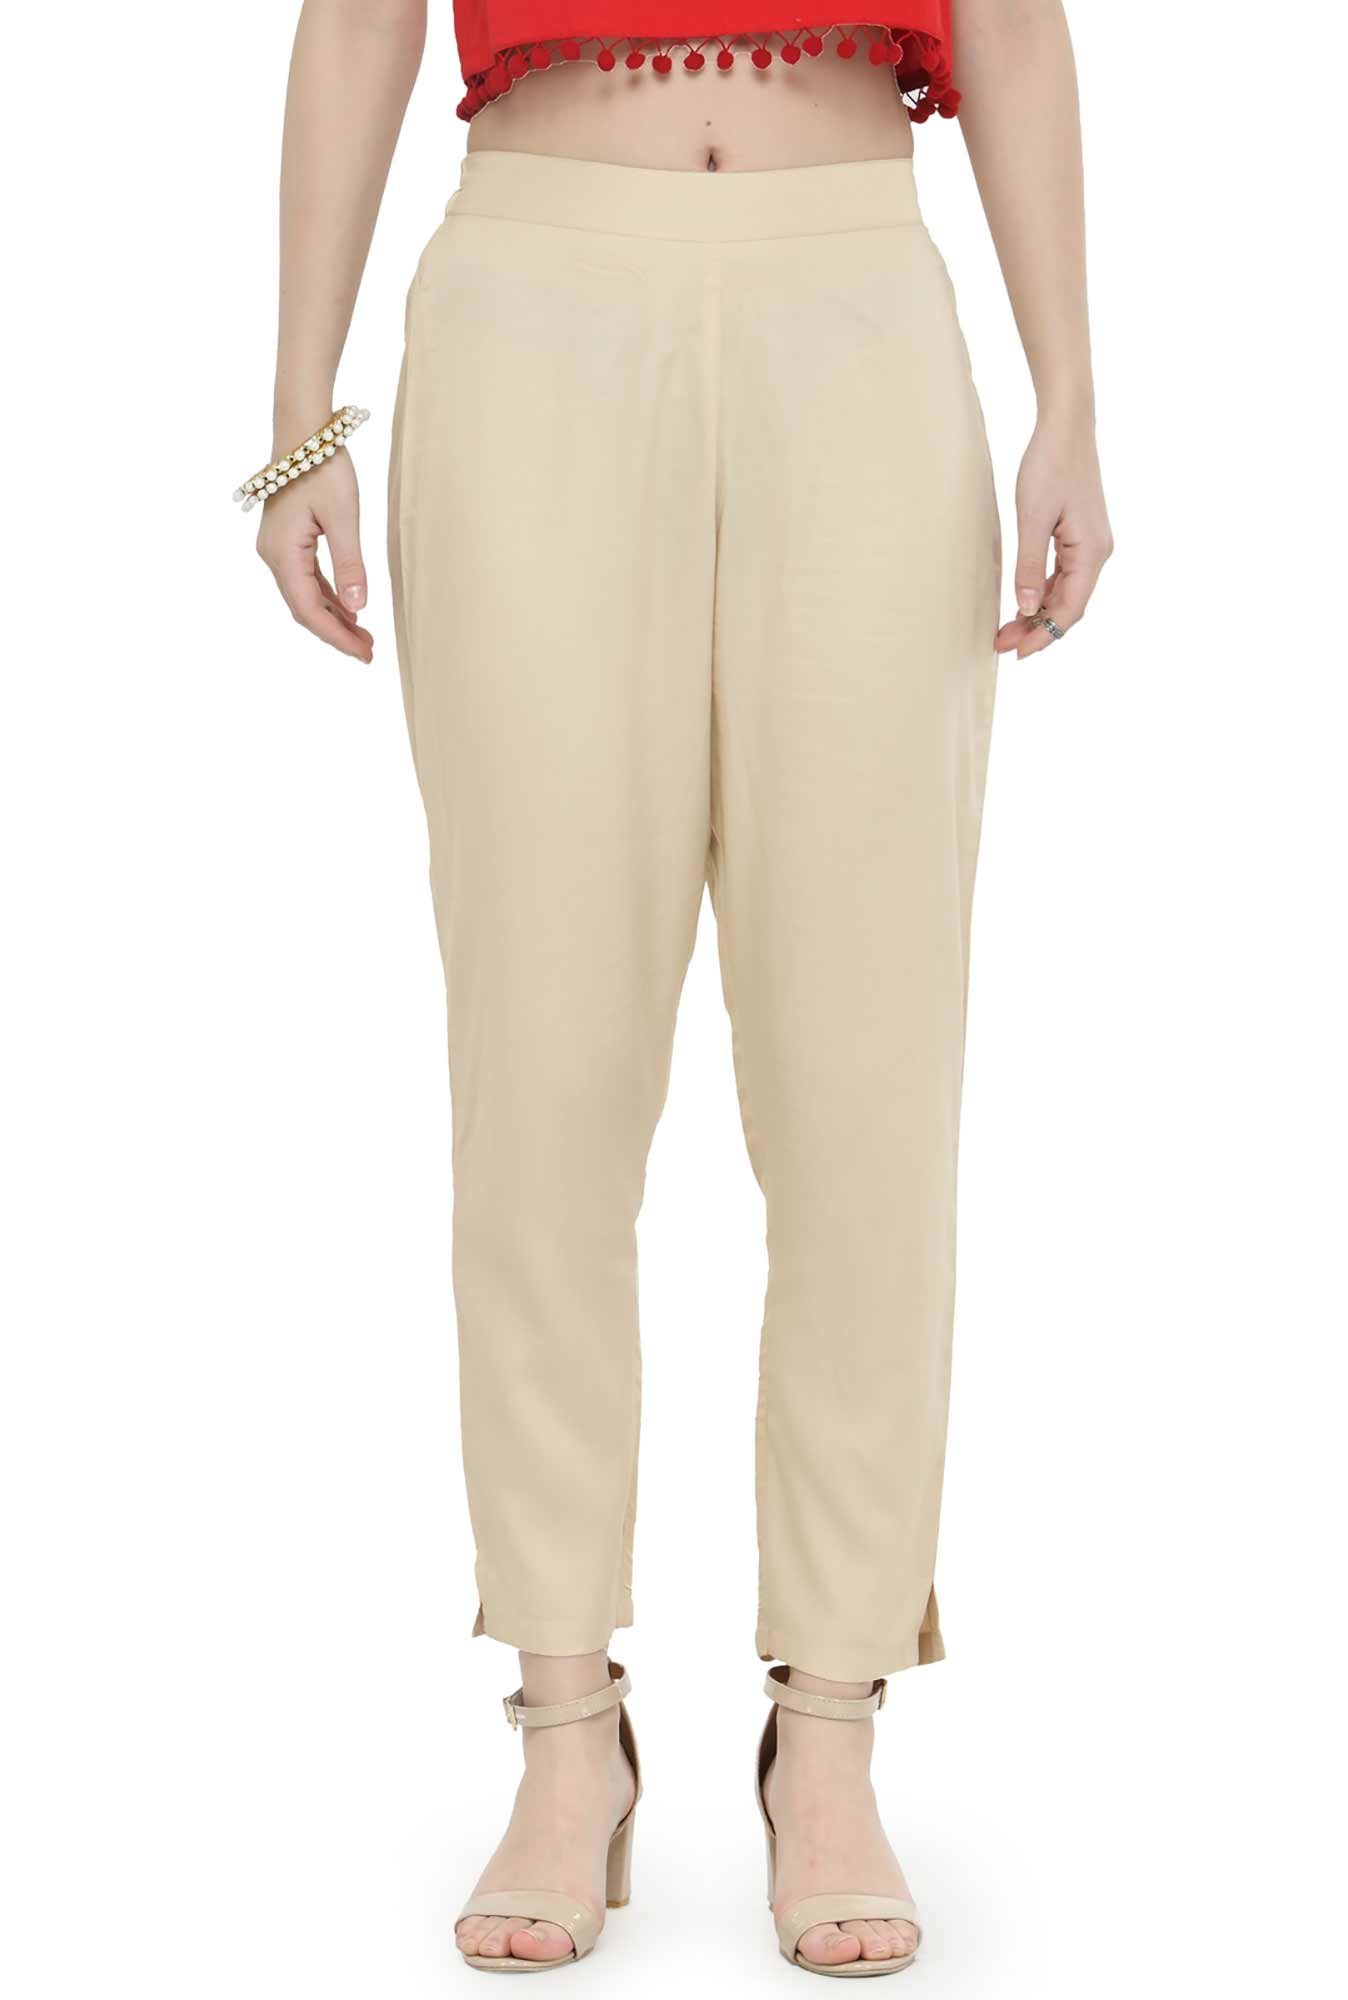 Varanga Beige Regular Fit Cigarette Pants